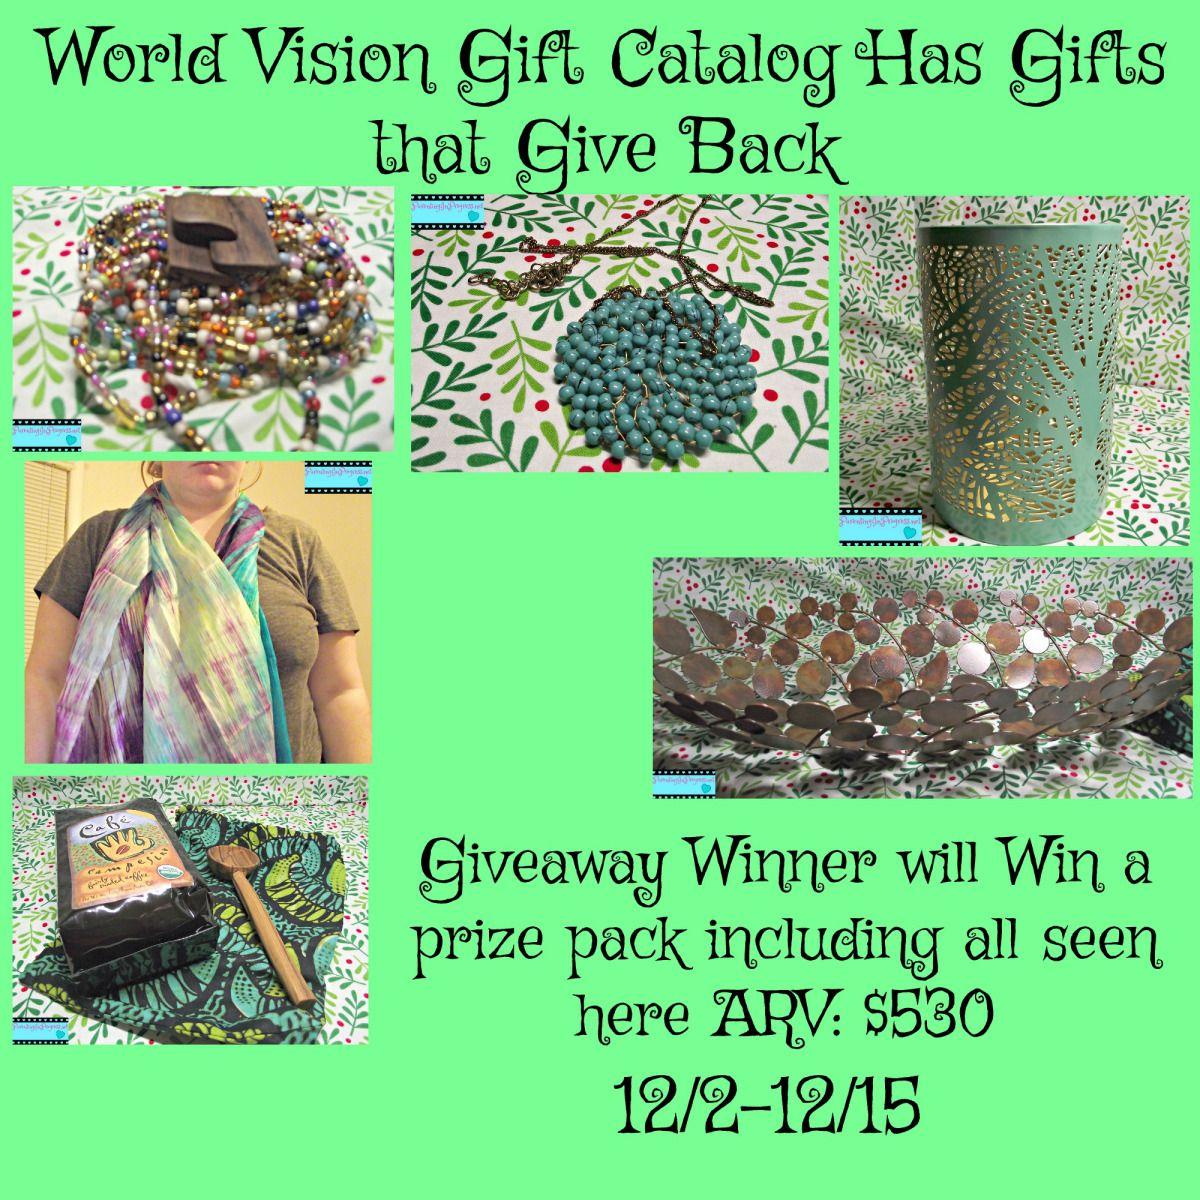 World Vision Gift Catalog Has Gifts That Give Back Giving Back